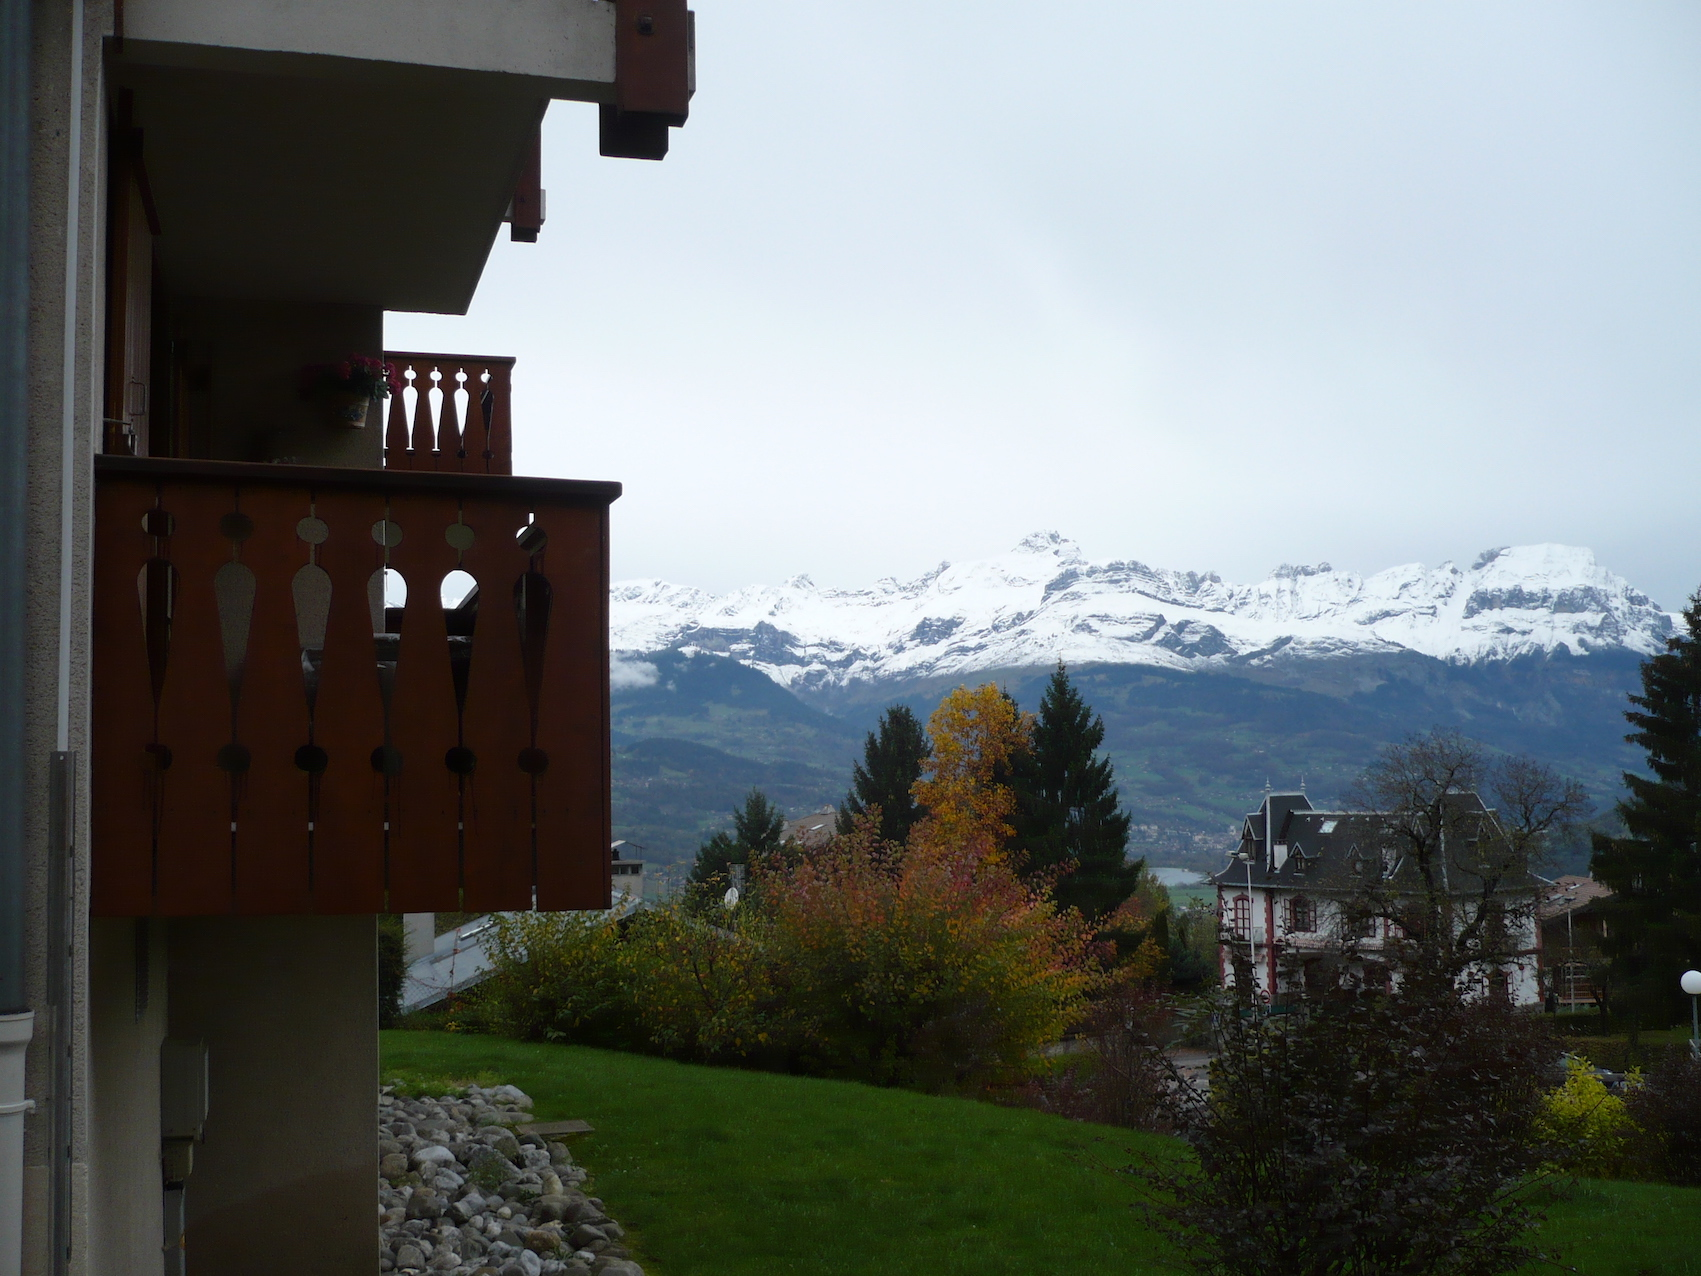 Aravis S12 - View from balcony